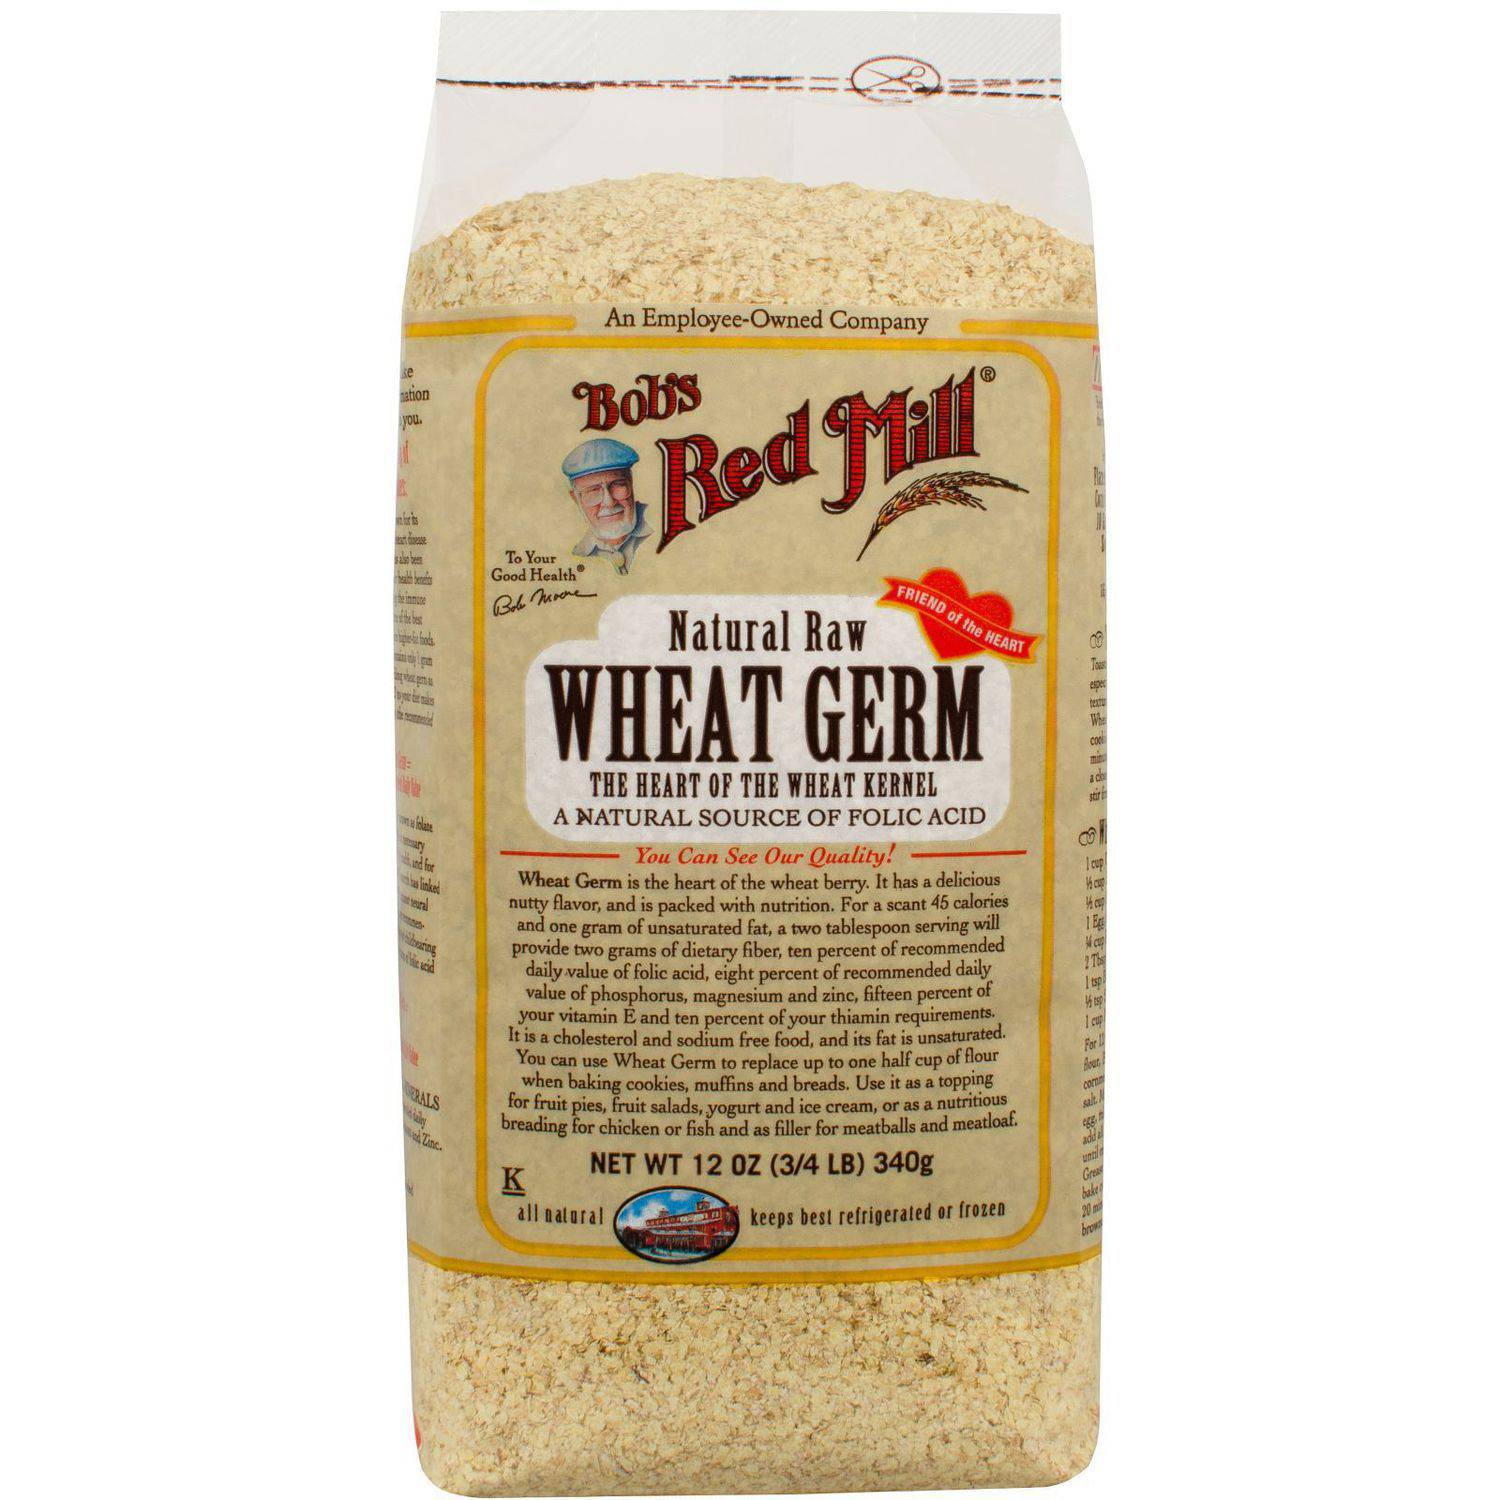 Bob's Red Mill Natural Raw Wheat Germ, 12 oz